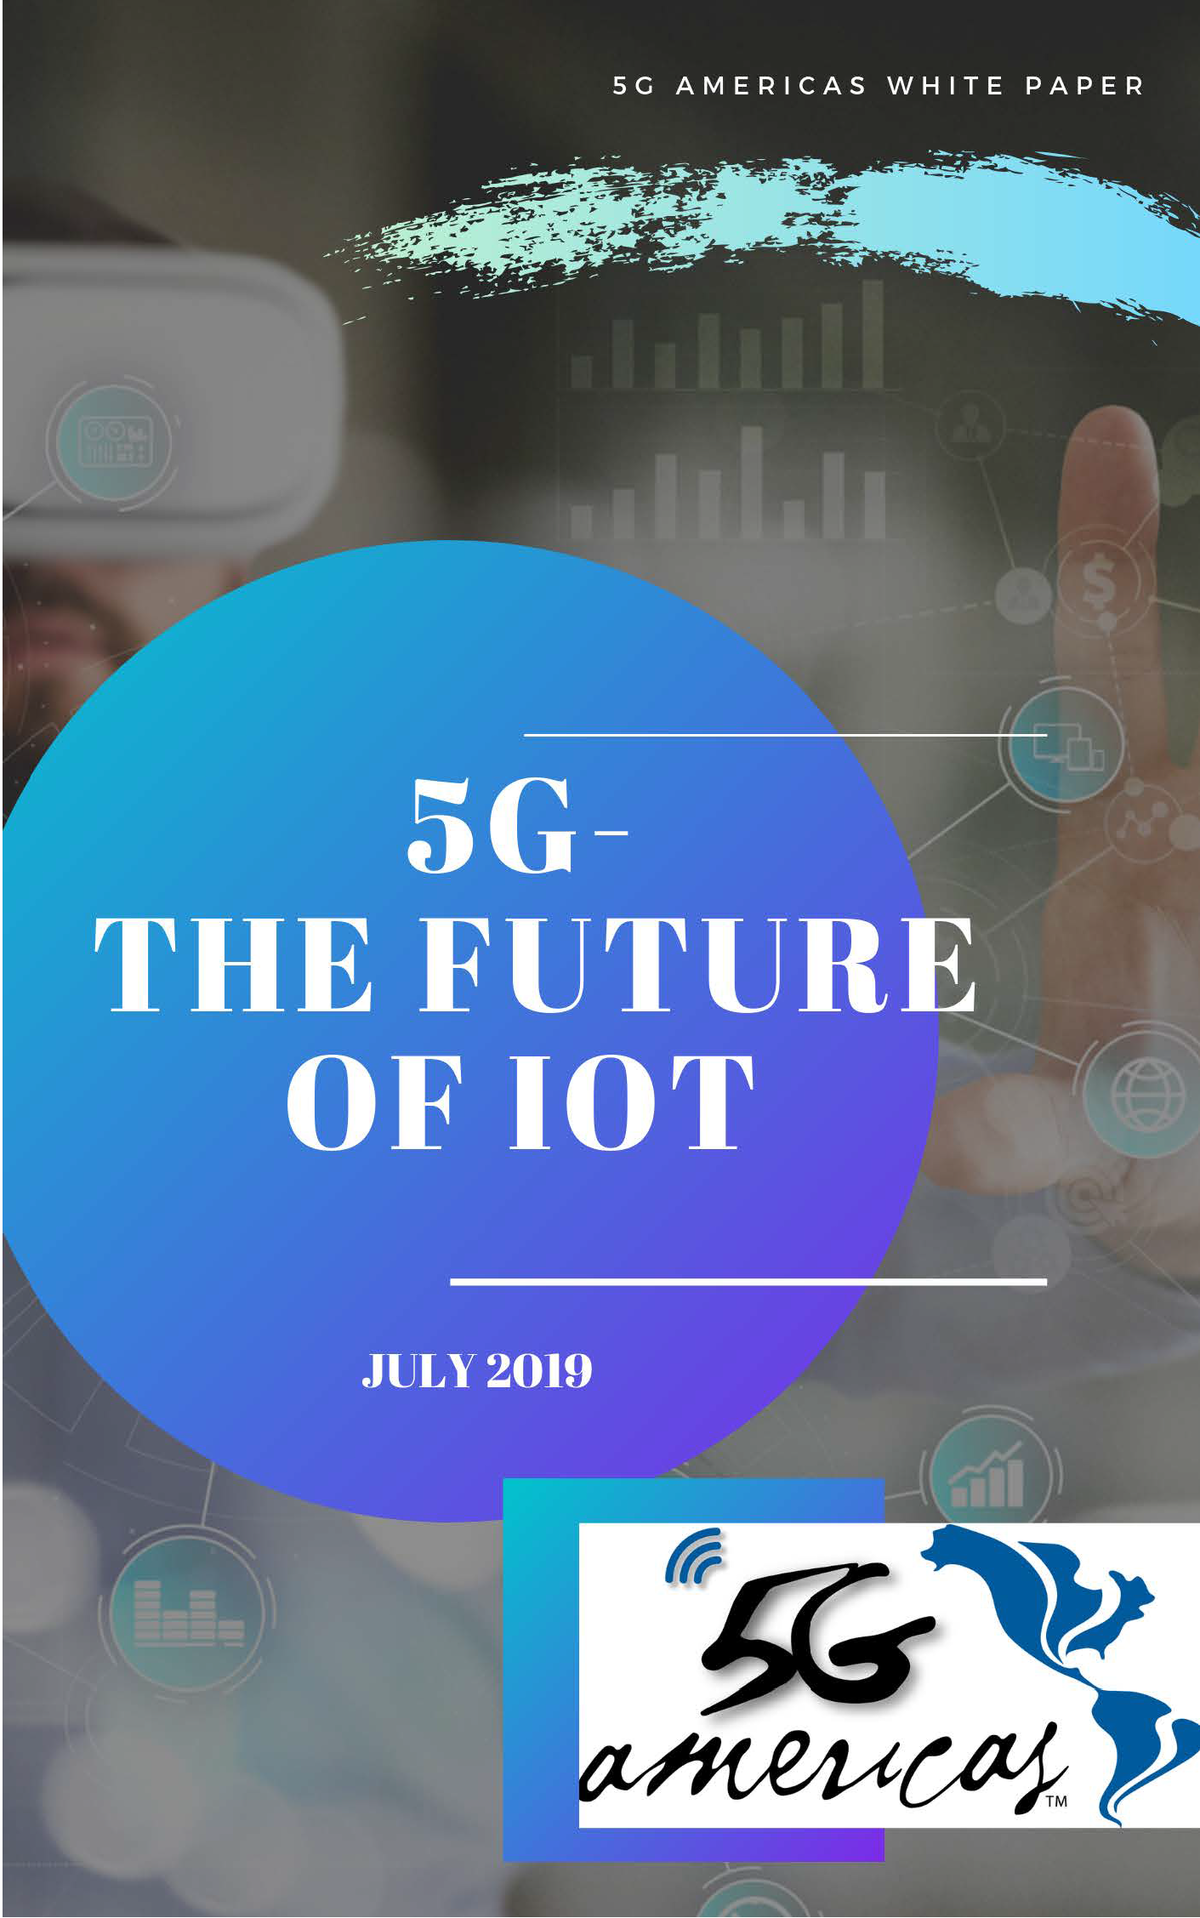 5G: The Future of IoT by 5G Americas